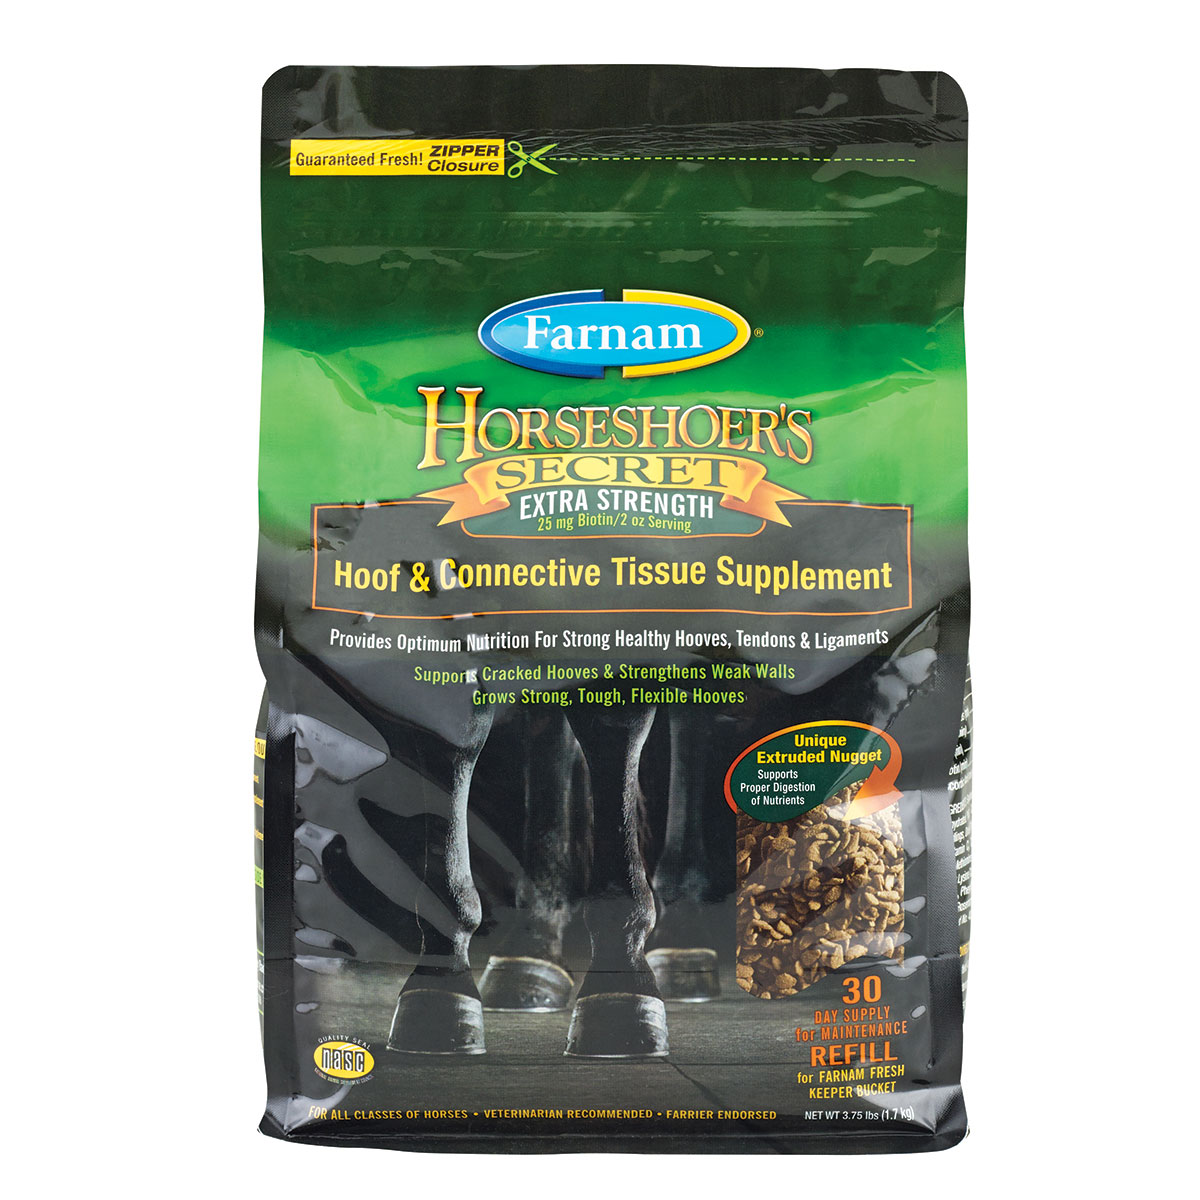 Horseshoer's Secret® Extra Strength Hoof & Connective Tissue Supplement